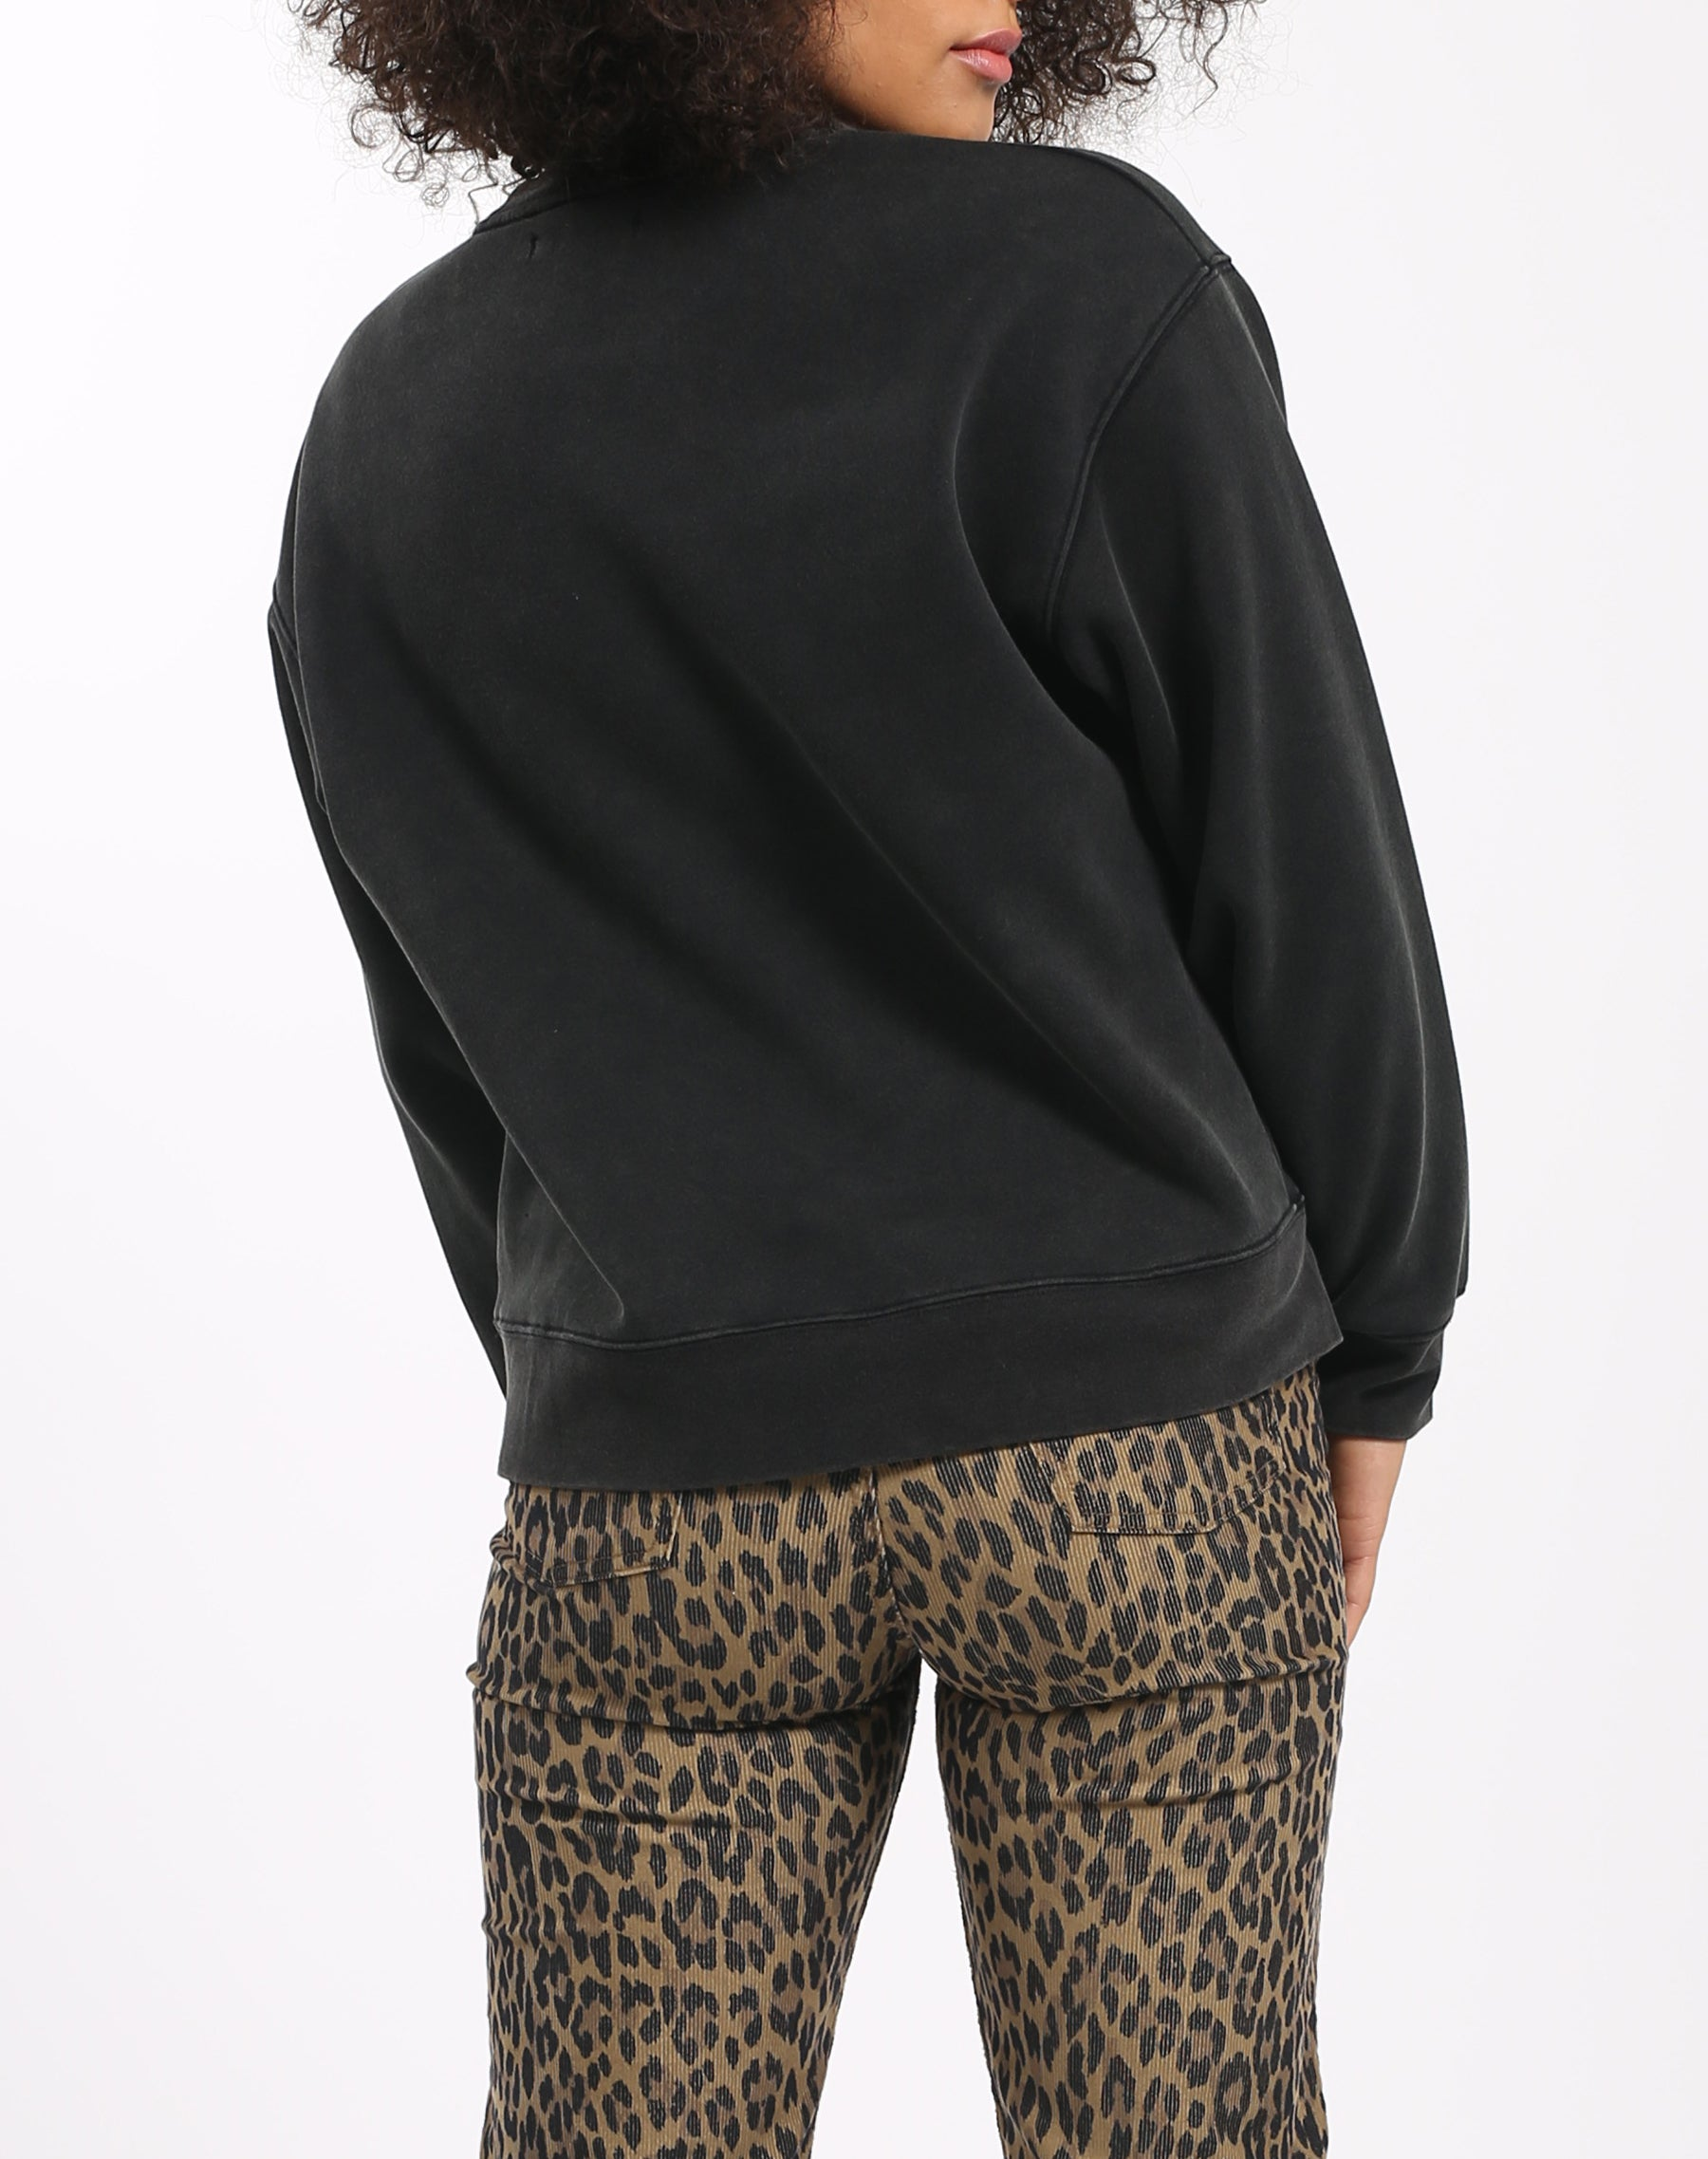 Photo of the back of the Jet Black Step Sister crew neck sweatshirt in acid wash by Brunette the Label.